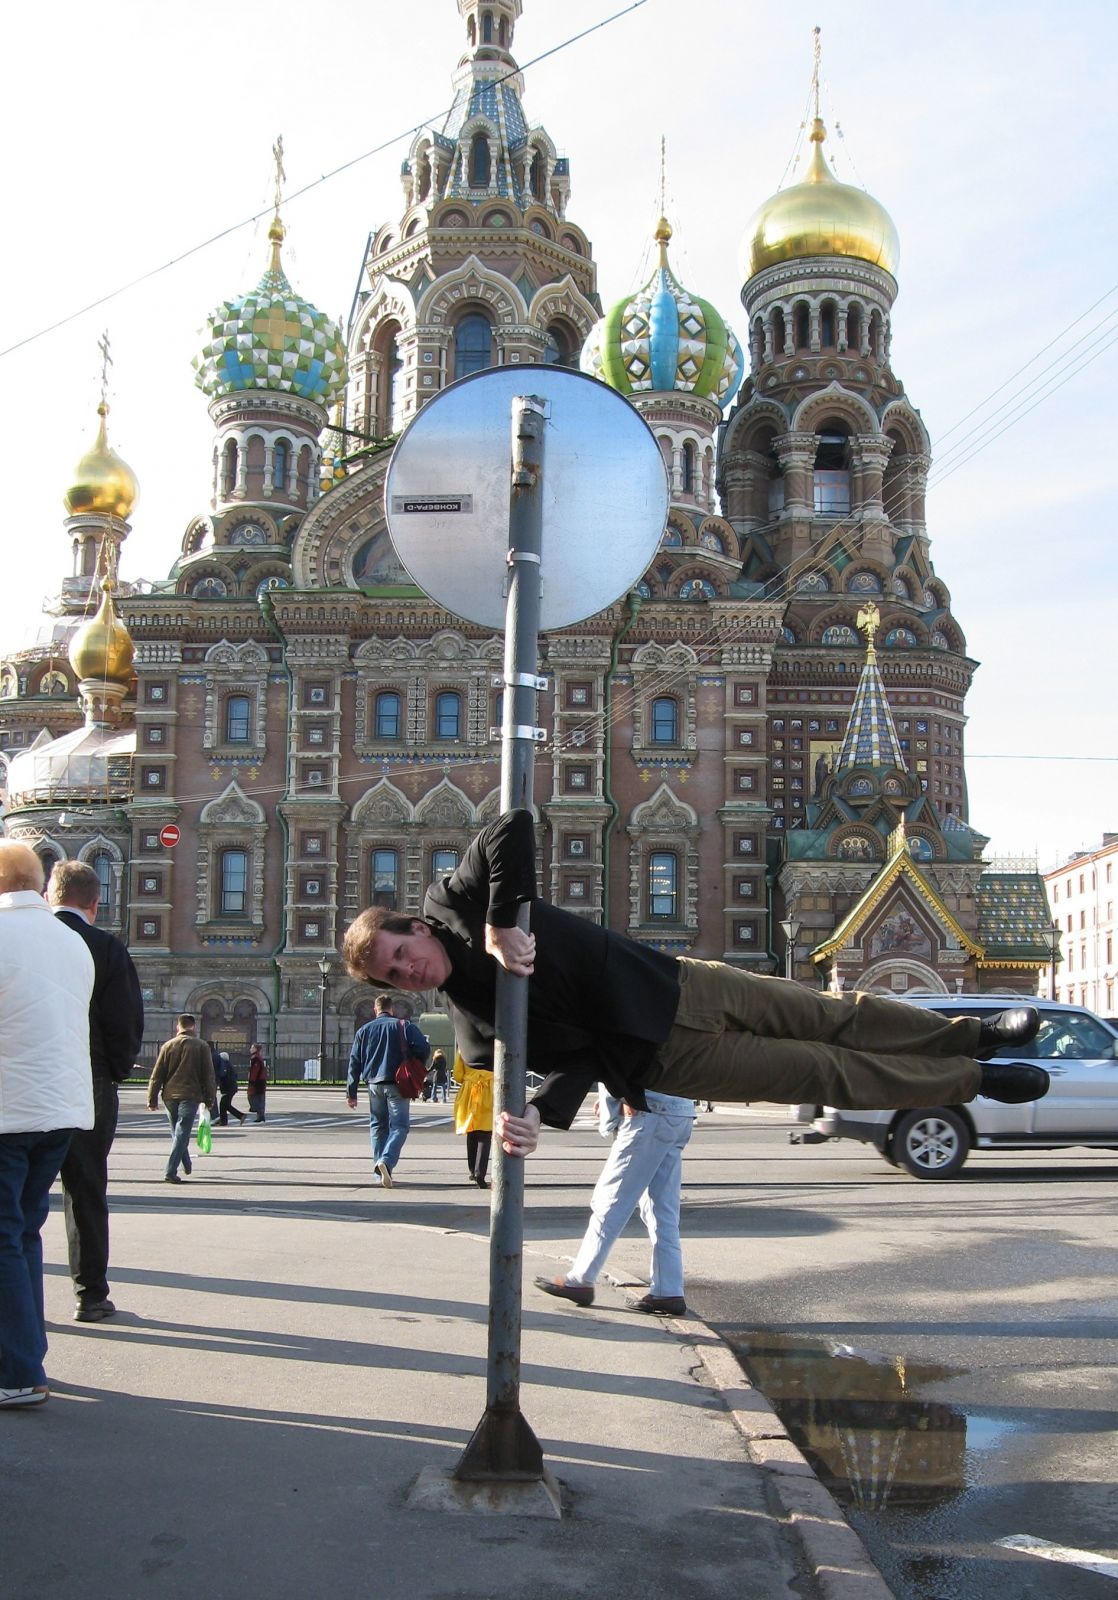 St Petersburg - Church of the Spilled Blood